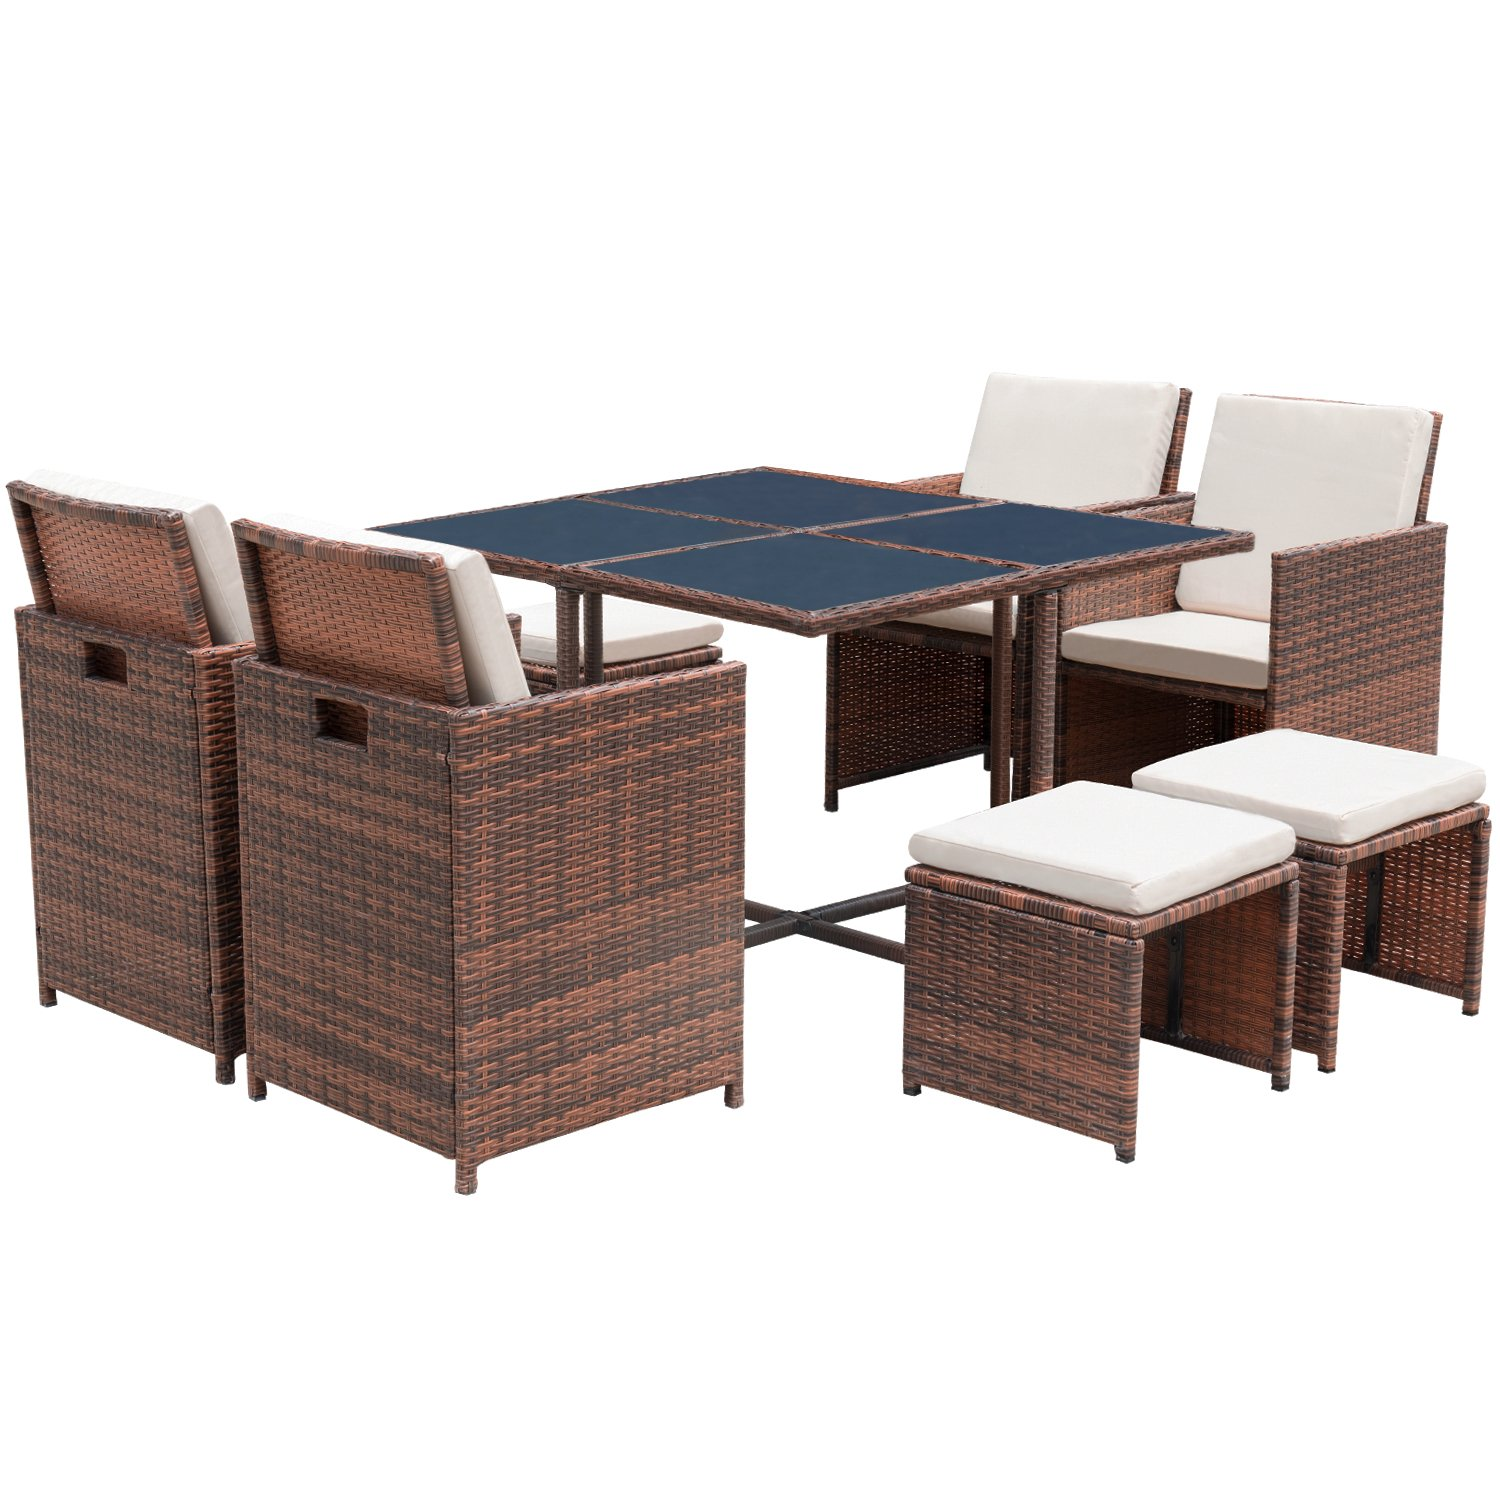 Flamaker 9 PCS Patio Set Cushioned PE Wicker Dining Set Sectional Conversation Set Rattan Outdoor Furniture Space Saving Furniture with Ottoman (9 Pieces)